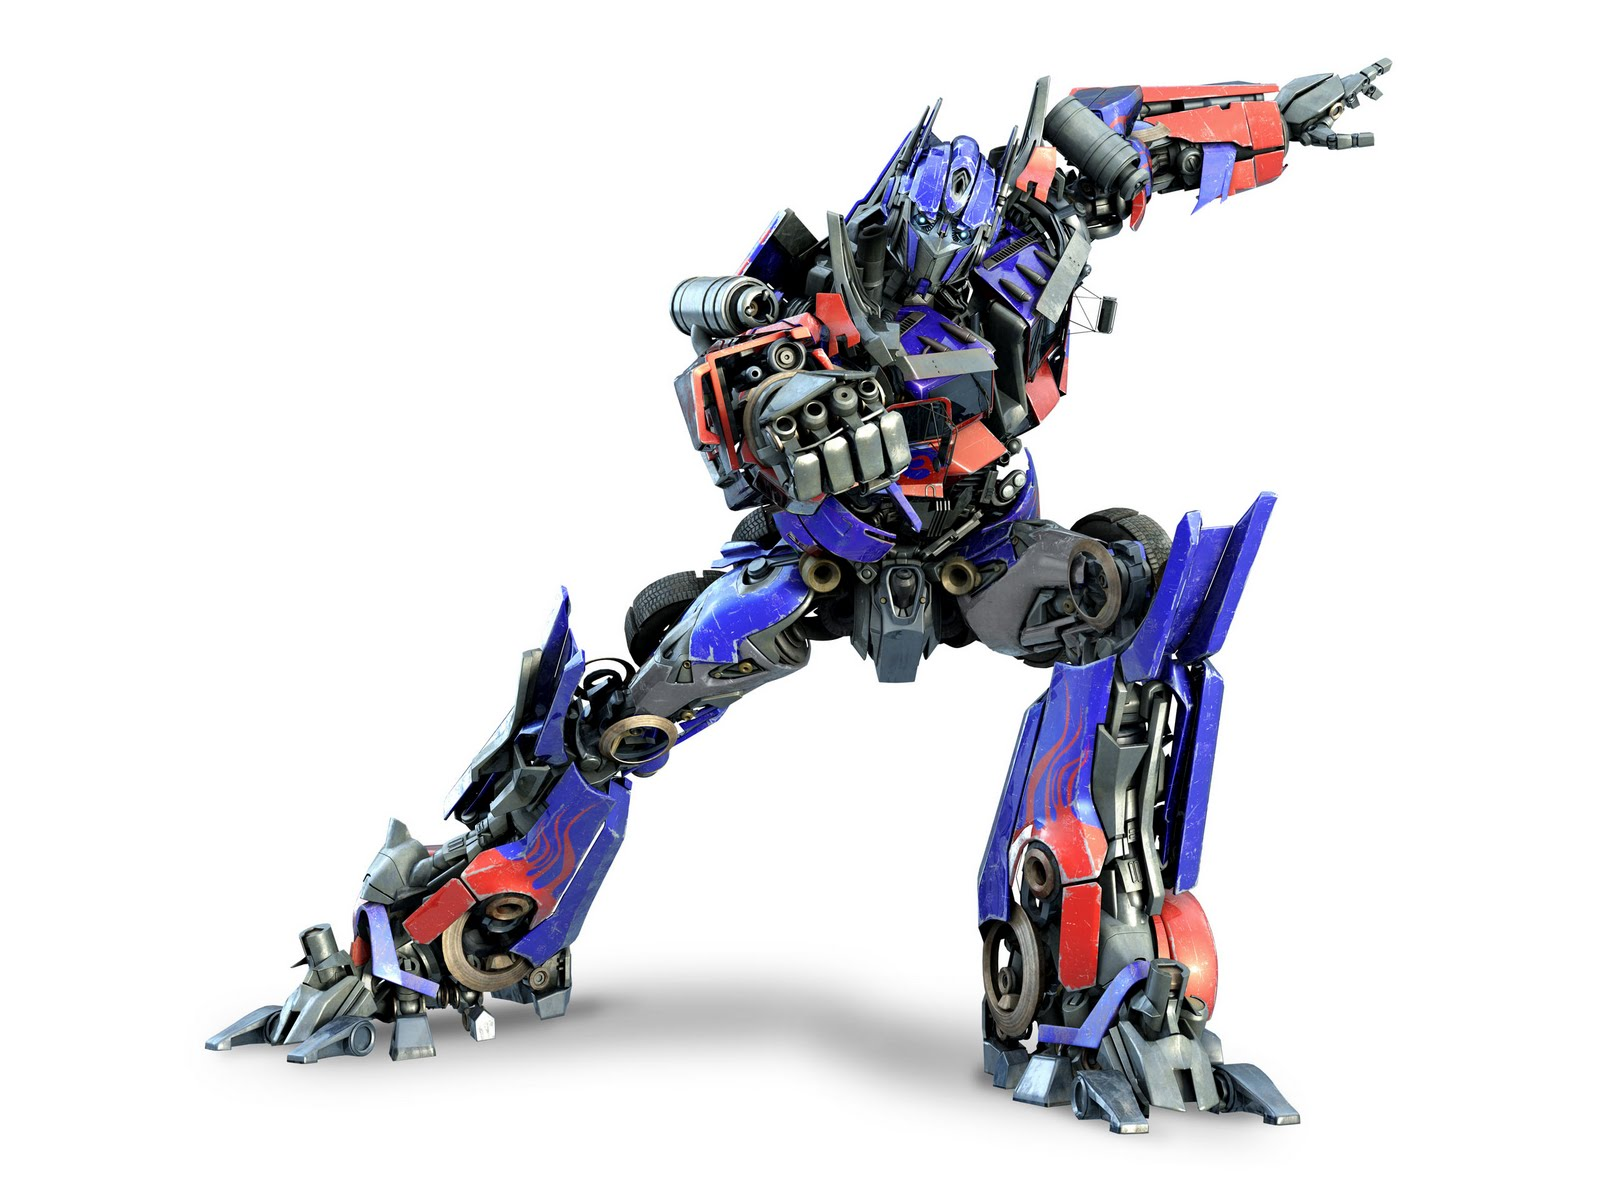 Wallpapers 60 Transformers 1 And 2 2560x1920